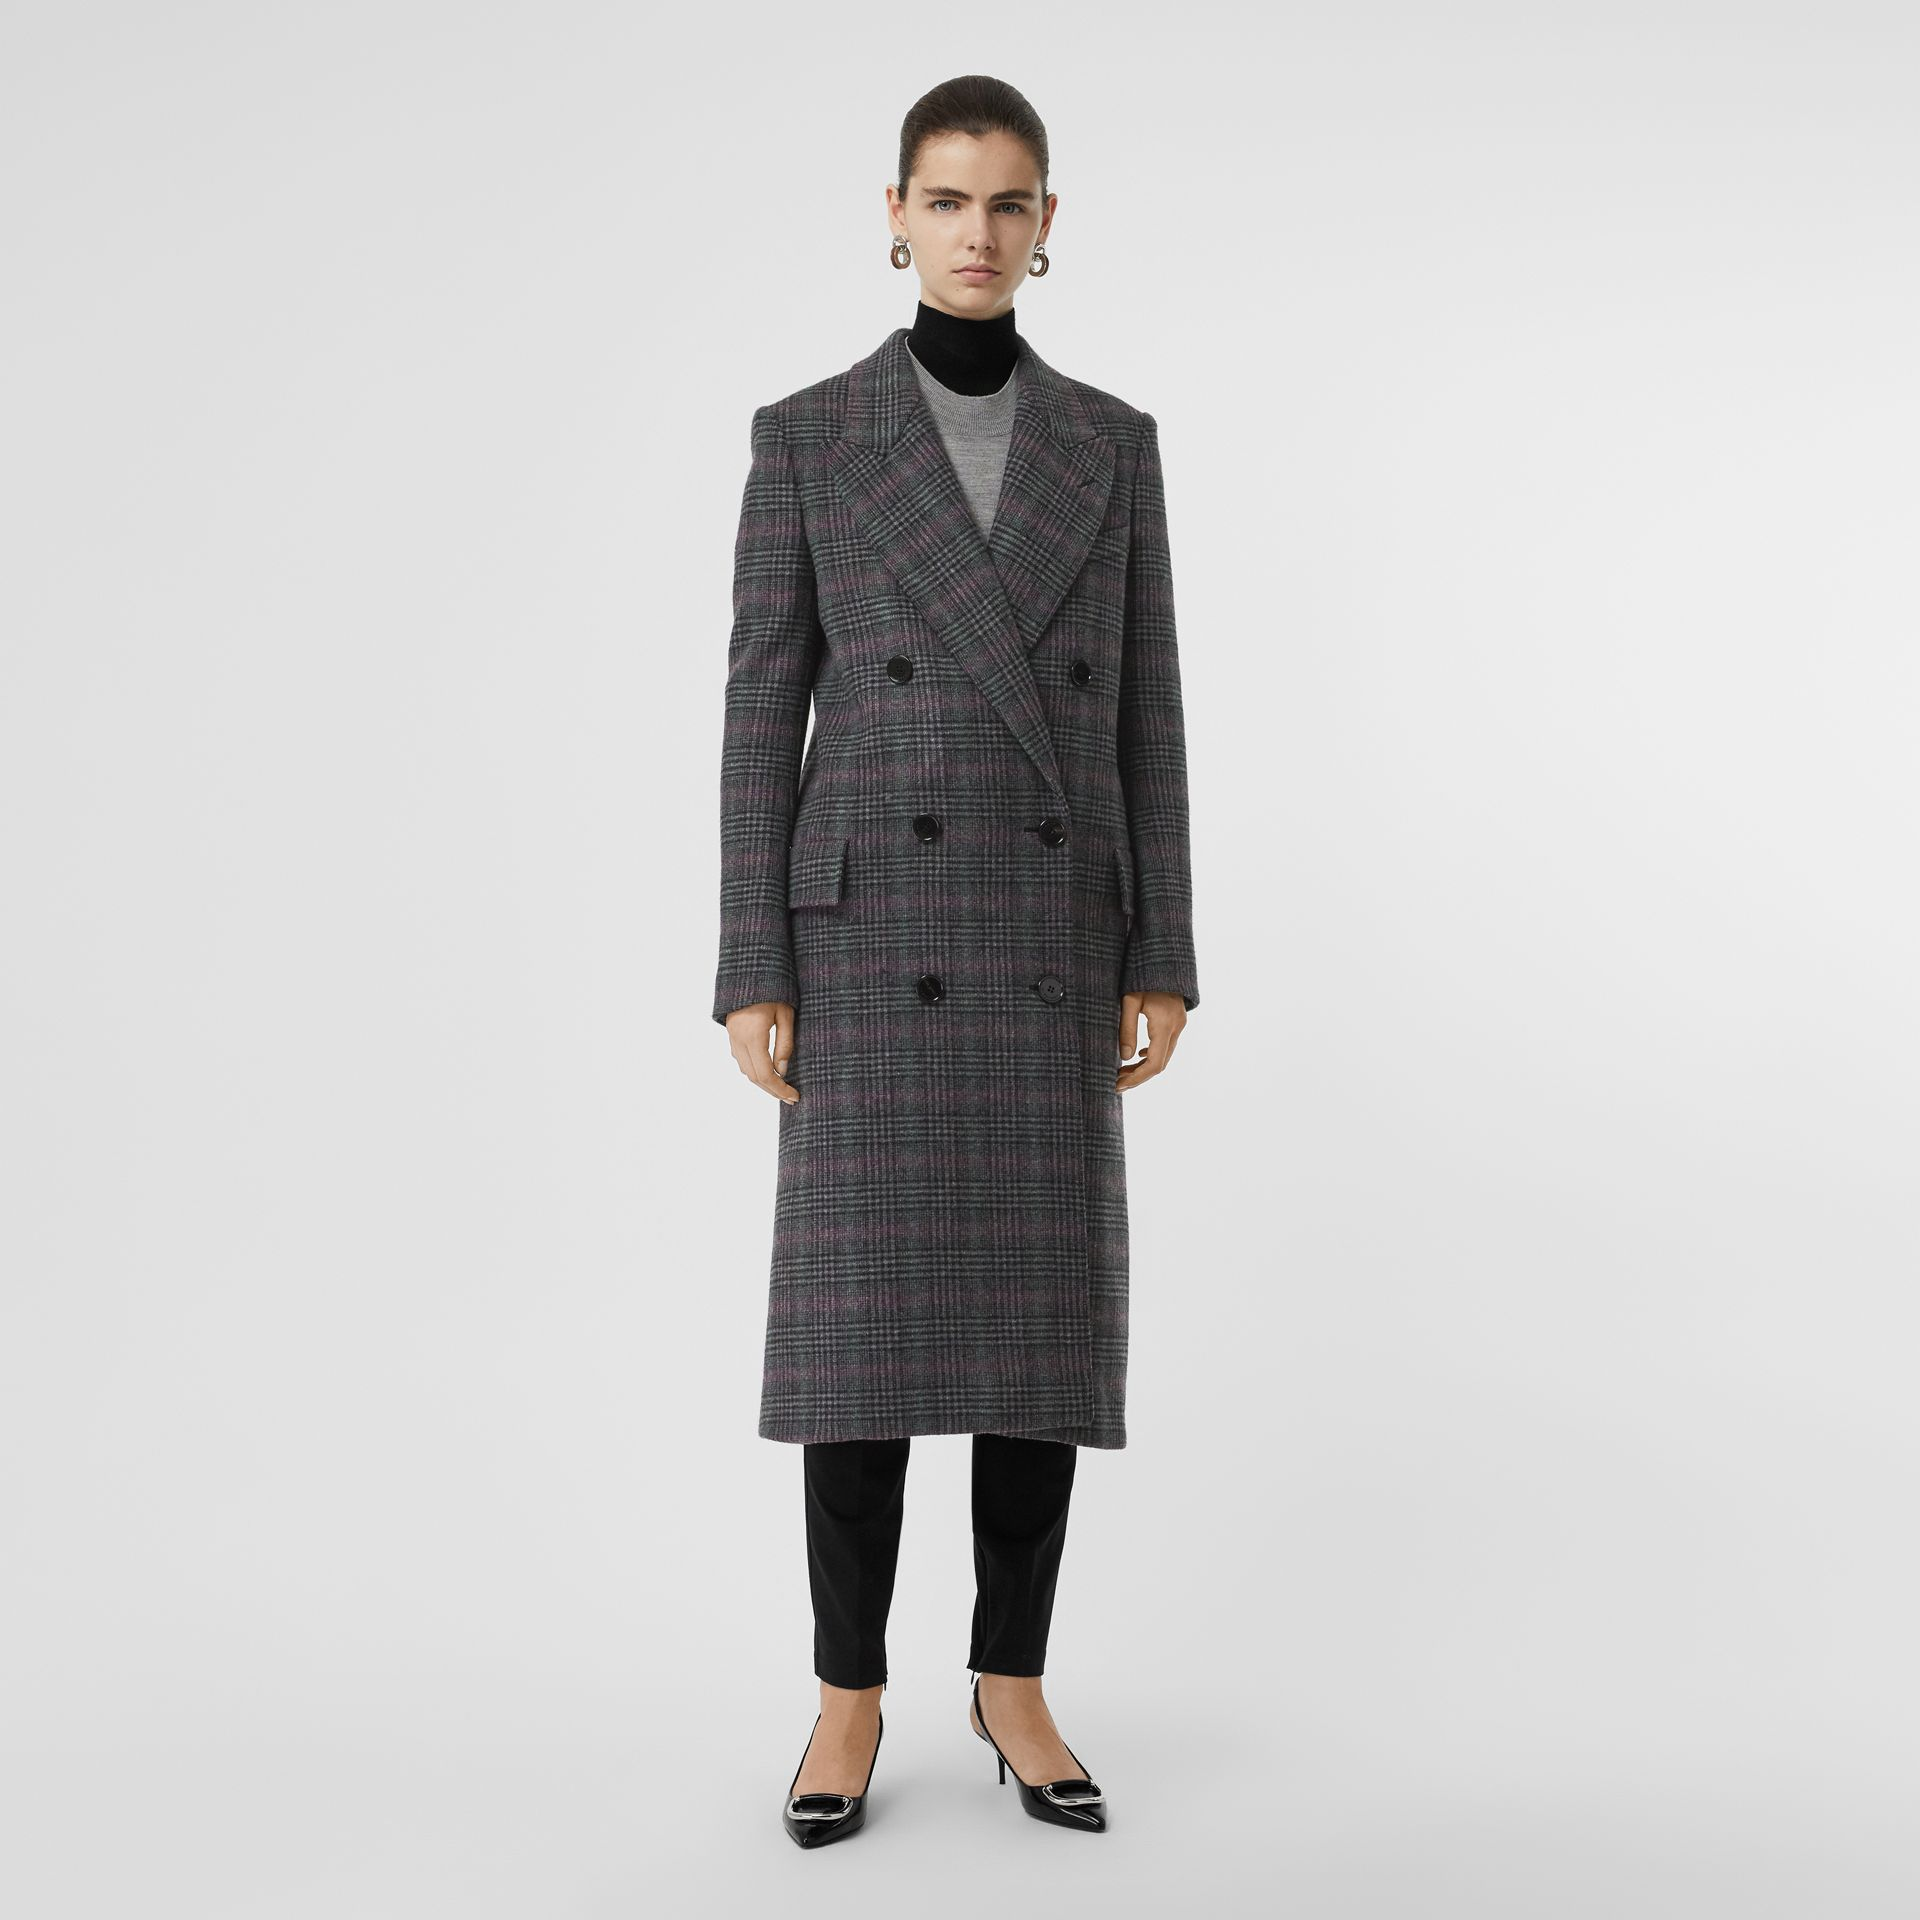 Eleganter Mantel aus Wolle mit Prince of Wales Check-Muster (Anthrazitfarben) - Damen | Burberry - Galerie-Bild 5